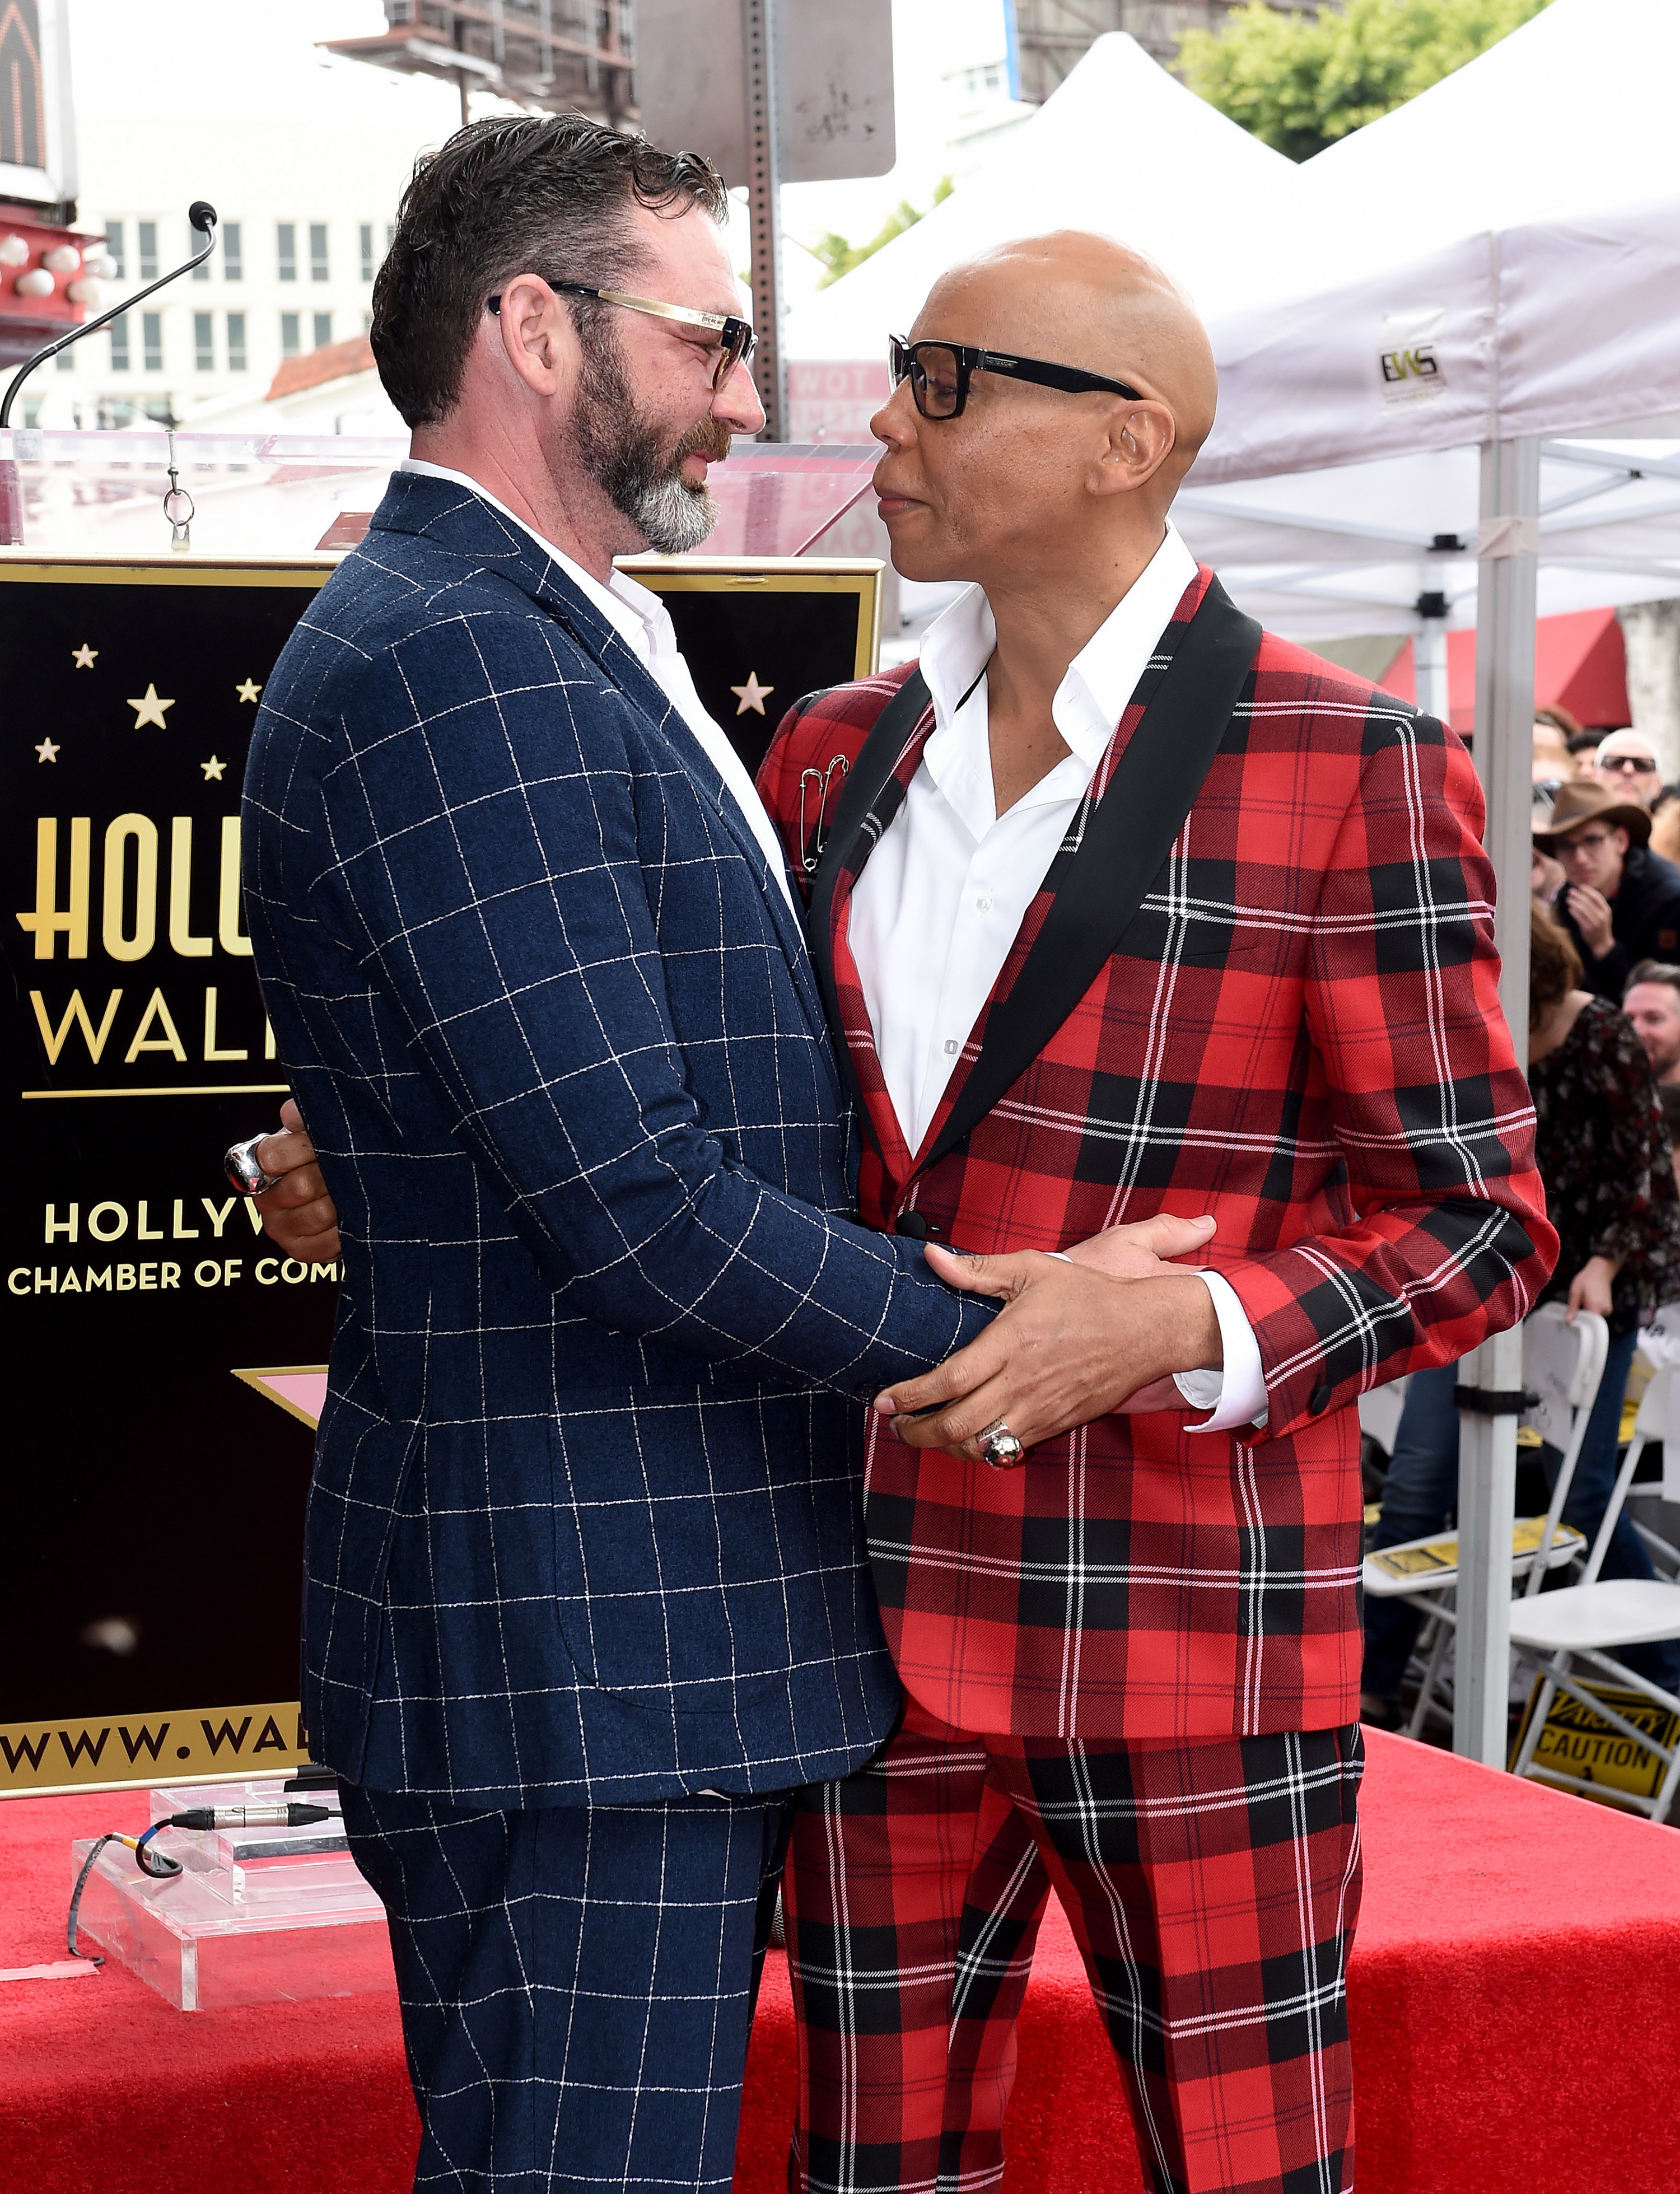 Georges and RuPaul hugging on a red carpet